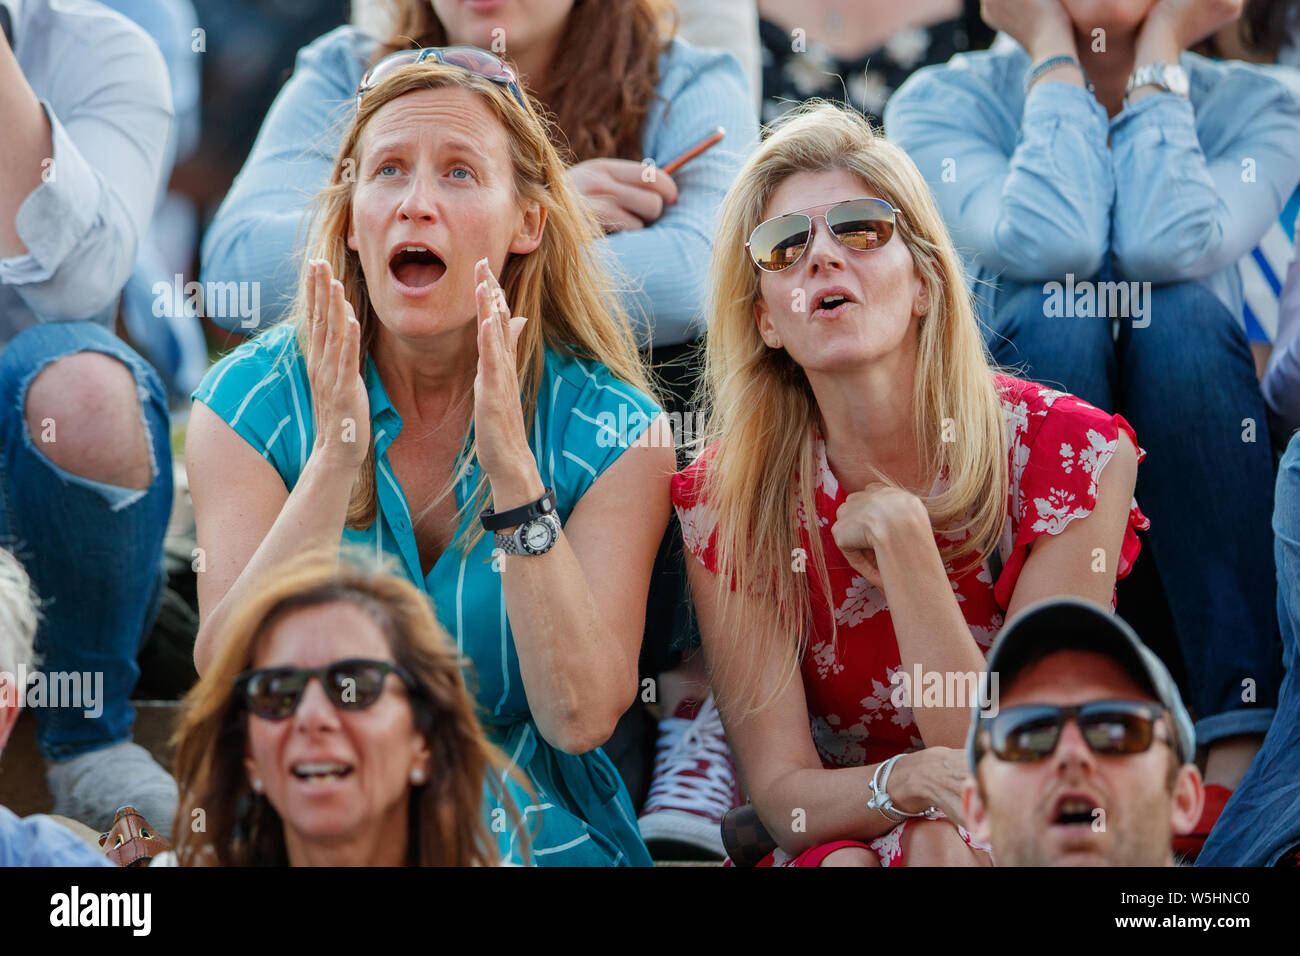 Spectators on Henman Hill Murray Mound or Aorangi Hill during The Championships at Wimbledon 2019. Stock Photo